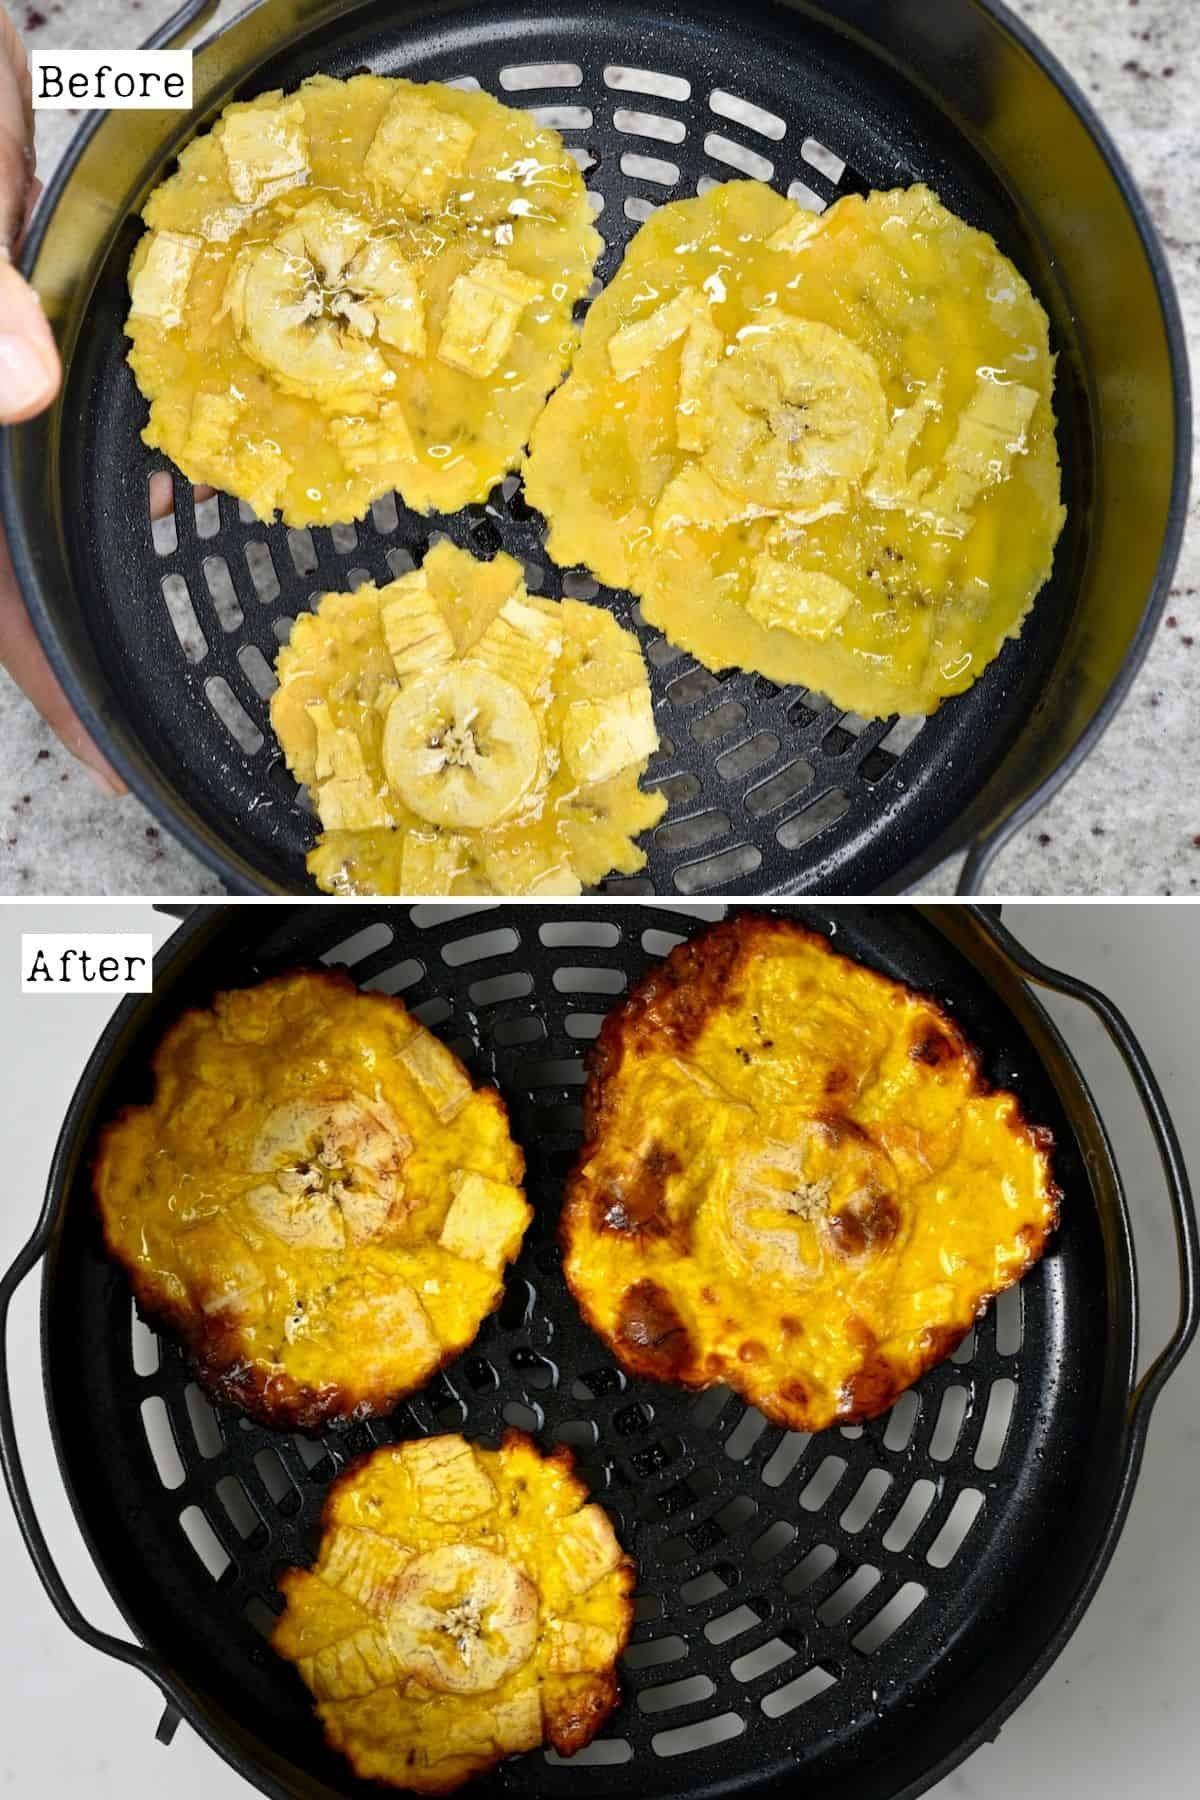 Before and after baking plantain chips